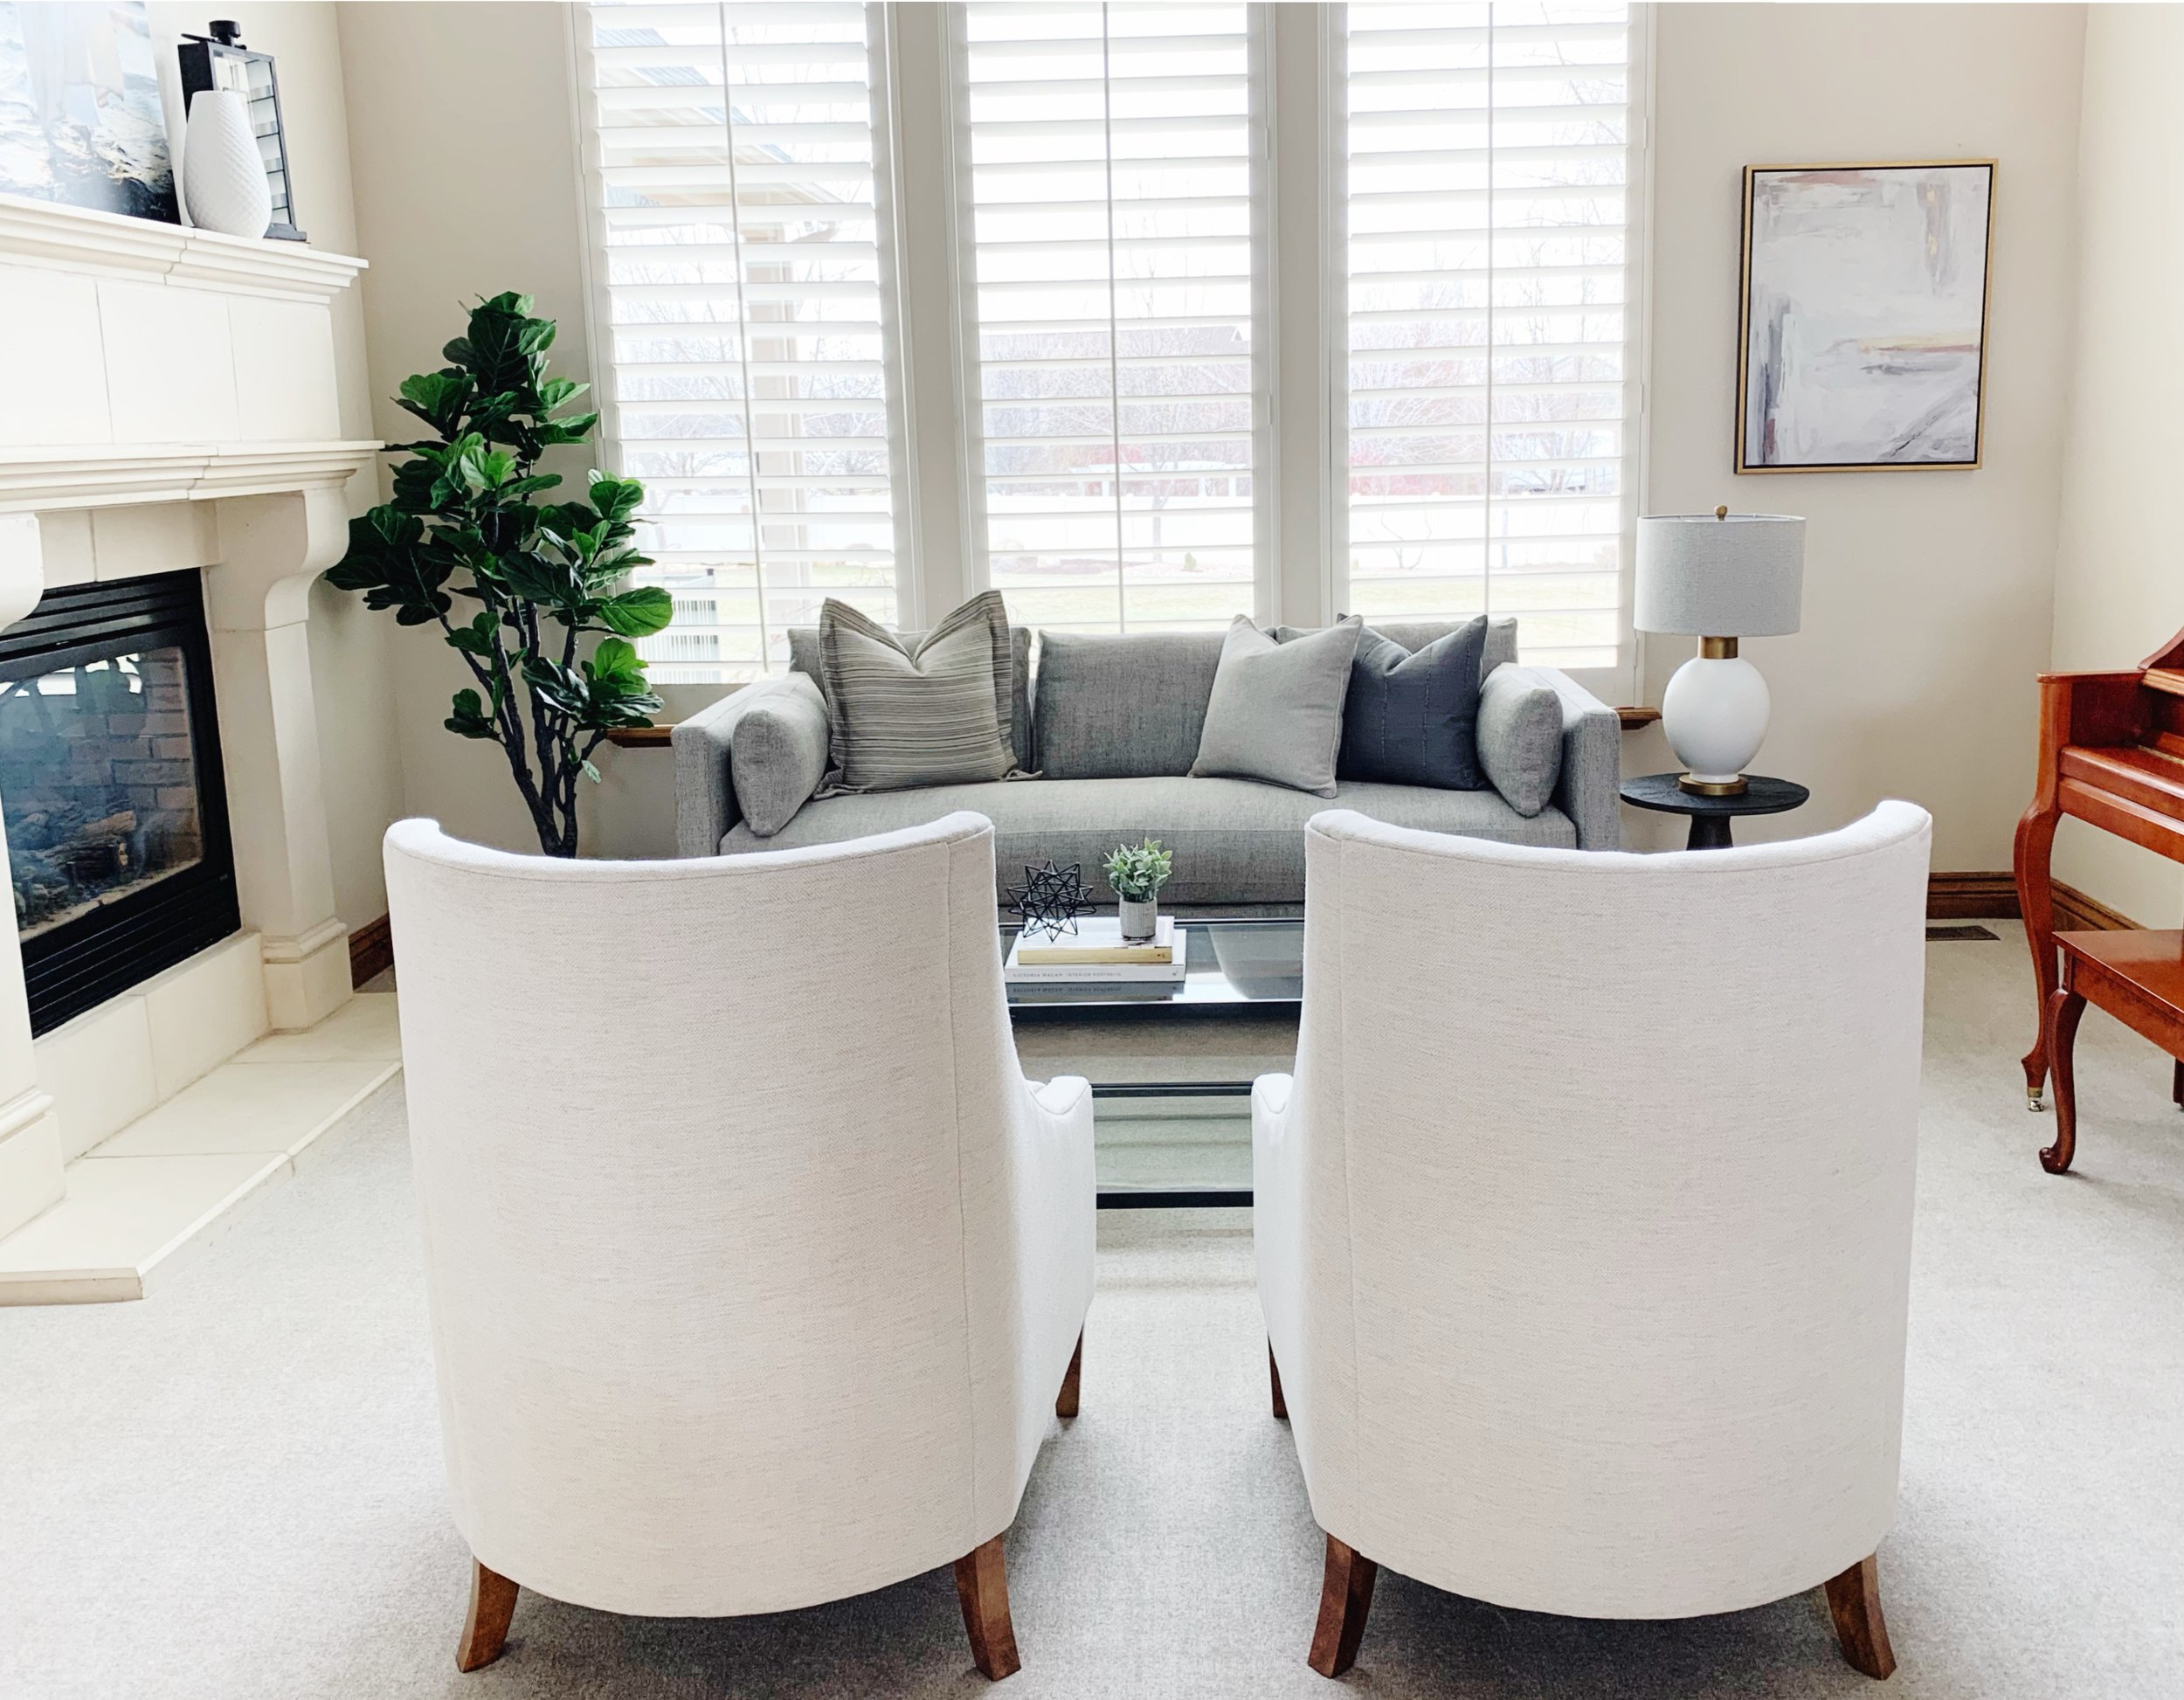 MAPLETON LIVING ROOM REFRESH   The impact of new textiles, clean lines & a fresh color palette!